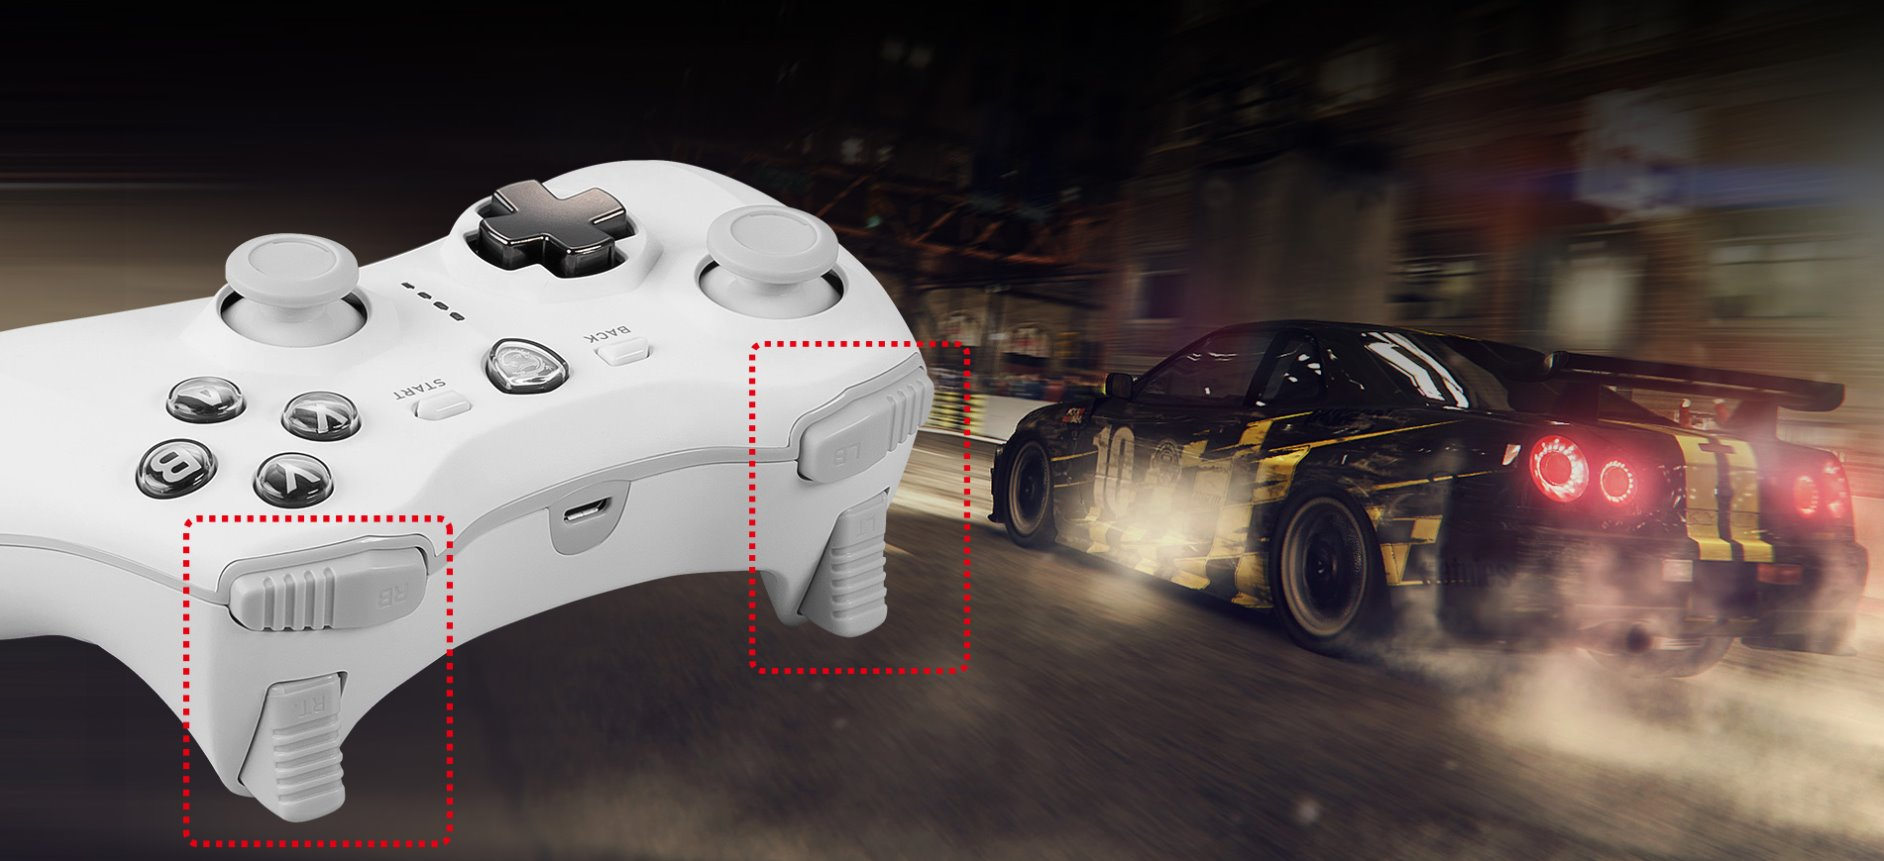 PAD MSI FORCE GC30 V2 WHITE GAMING CONTROLLER3